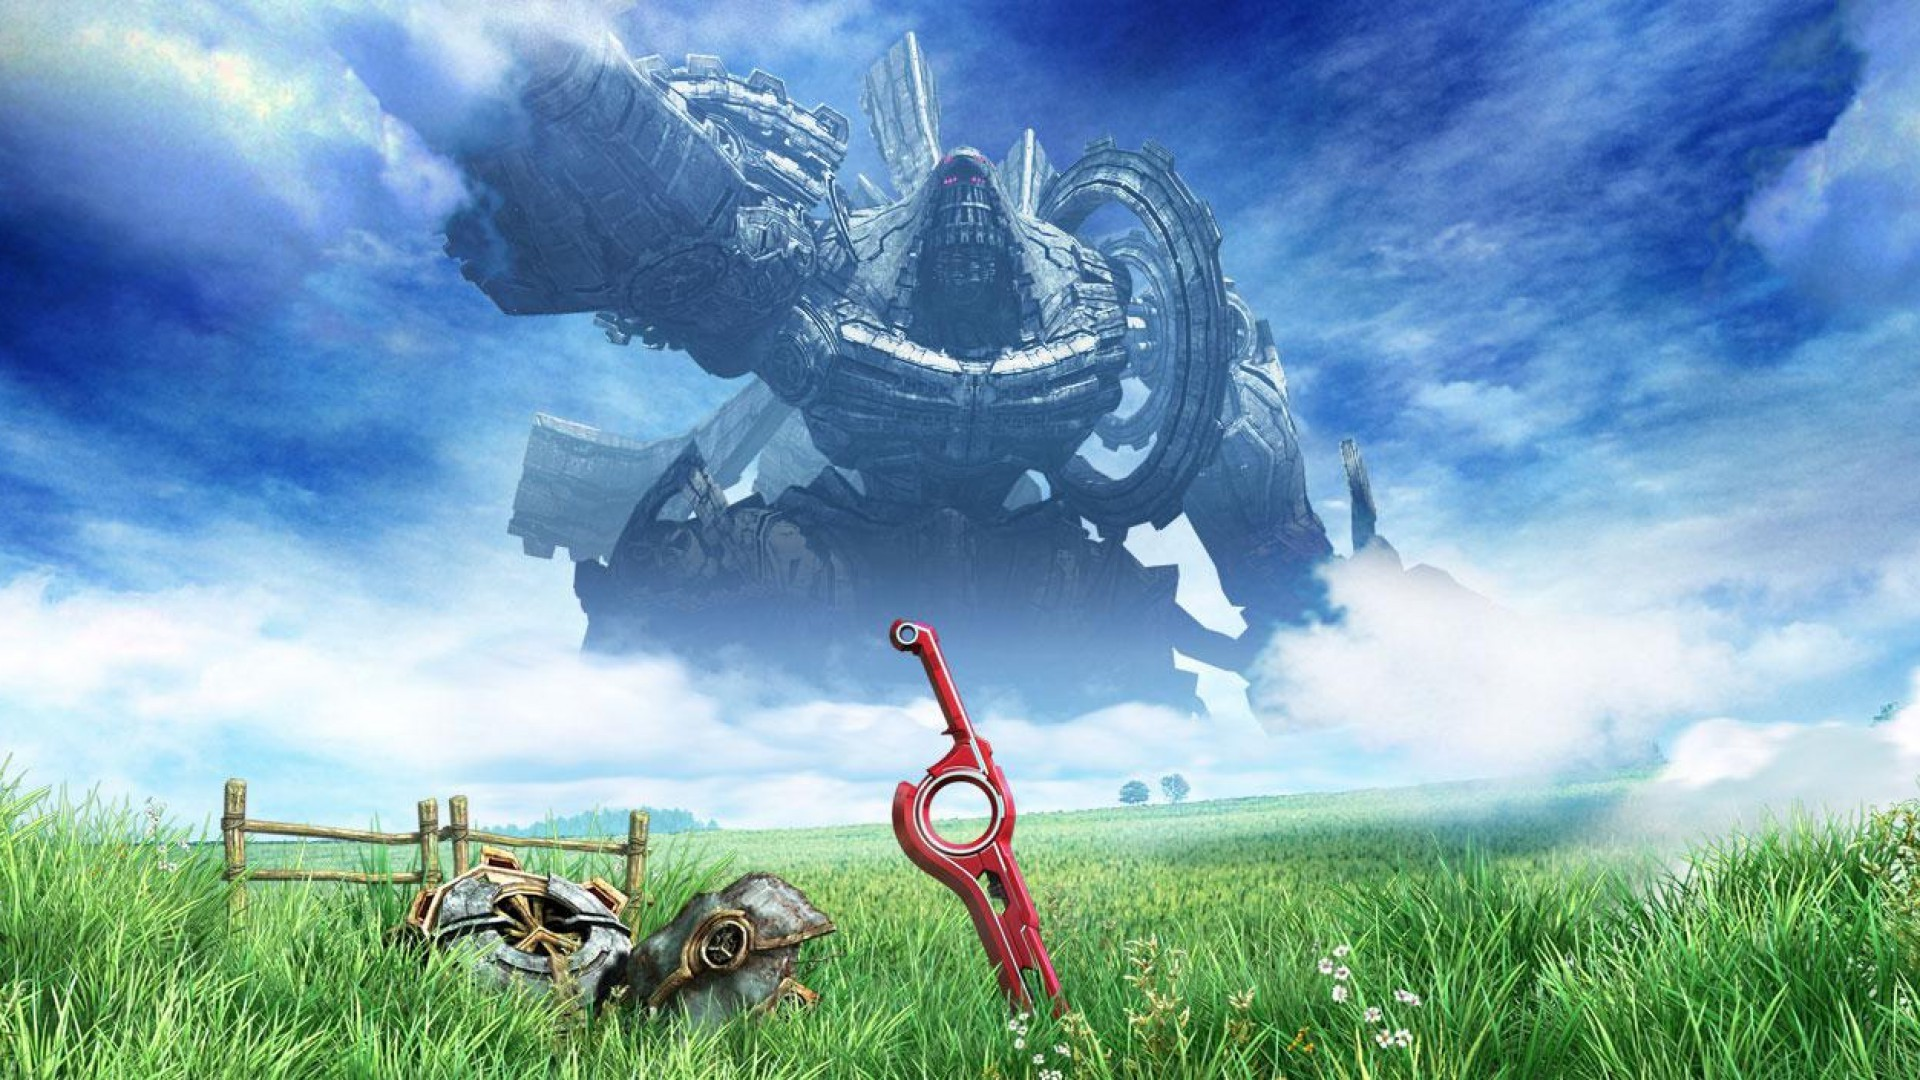 Xenoblade Chronicles Wallpaper Download